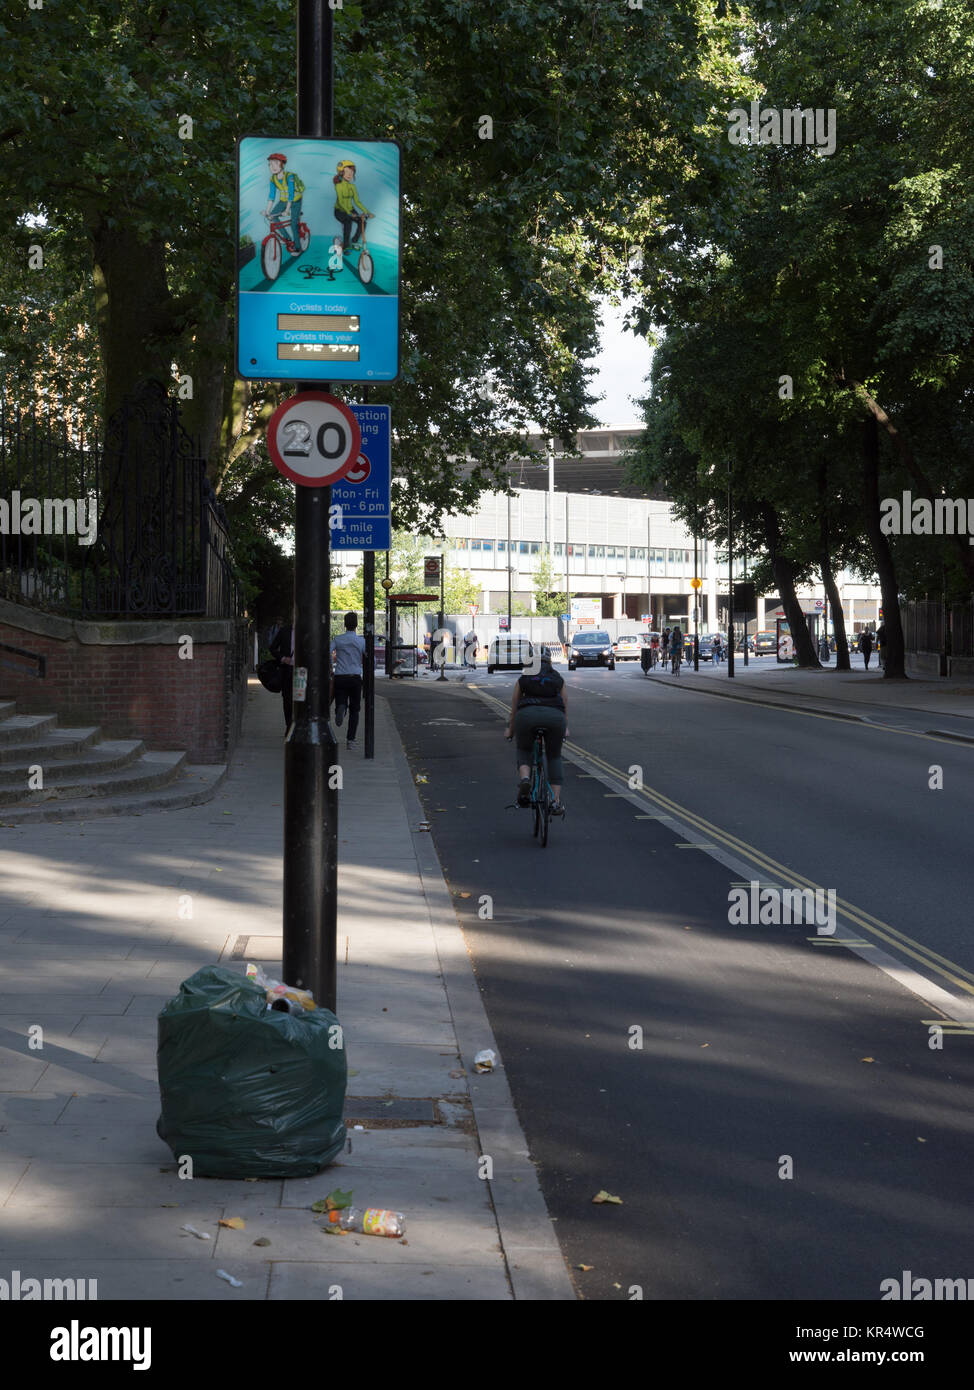 London, England - July 25, 2016: Cyclists use the newly introduced 'segregated' stepped cycle lanes on Pancras - Stock Image